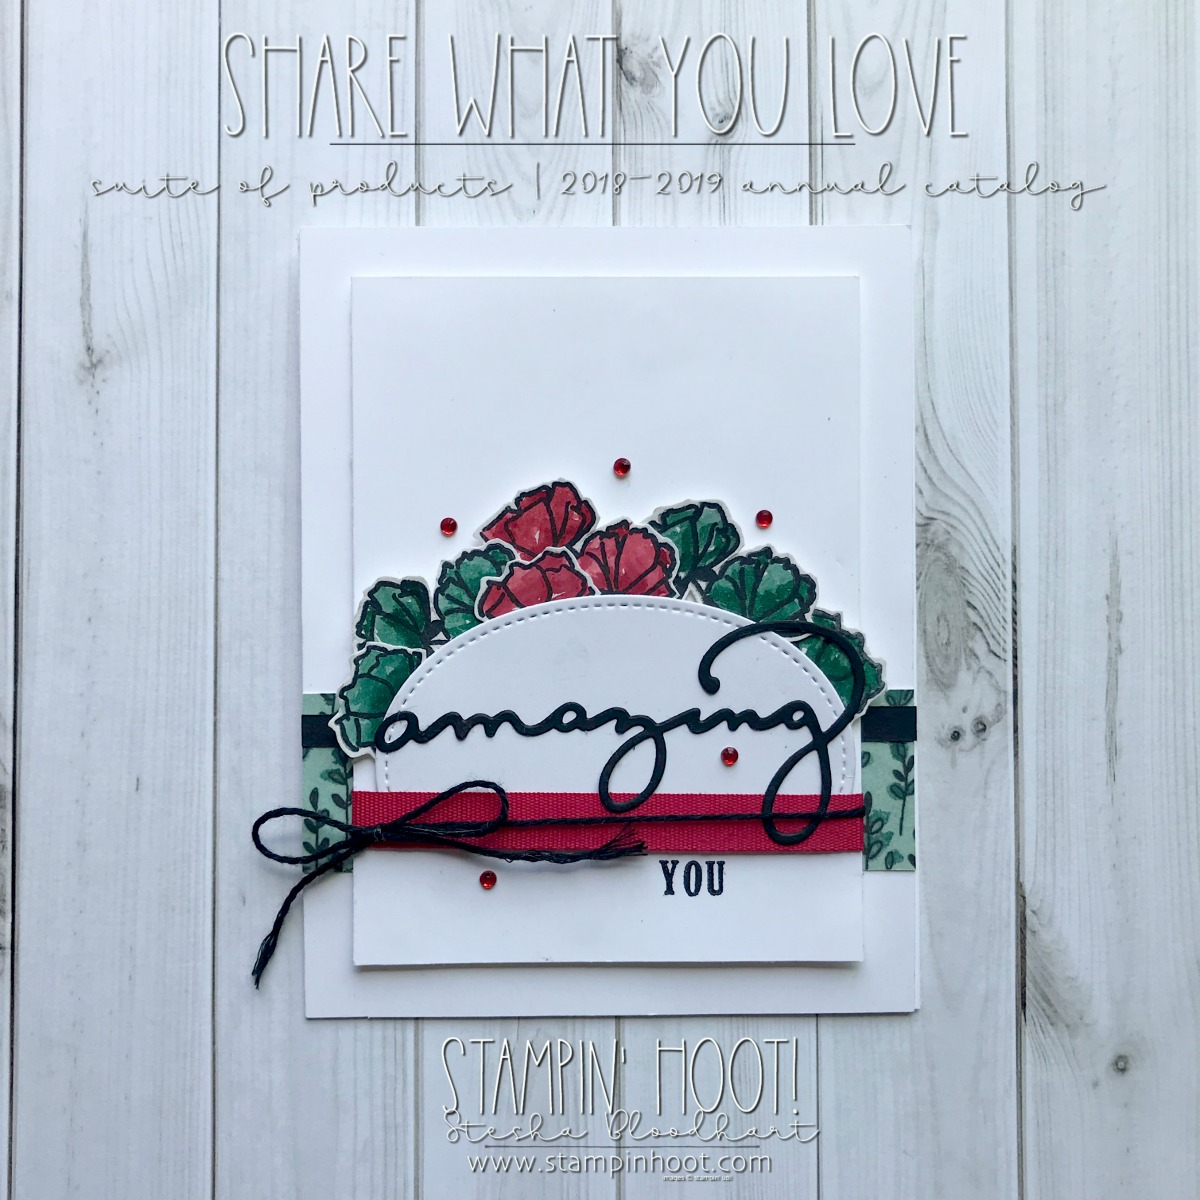 Share What You Love Bundle & Celebrate You Thinlits Dies by Stampin' Up! #OnStage2018 Display Board Sample by Stesha Bloodhart, Stampin' Hoot! #steshabloodhart #stampinhoot